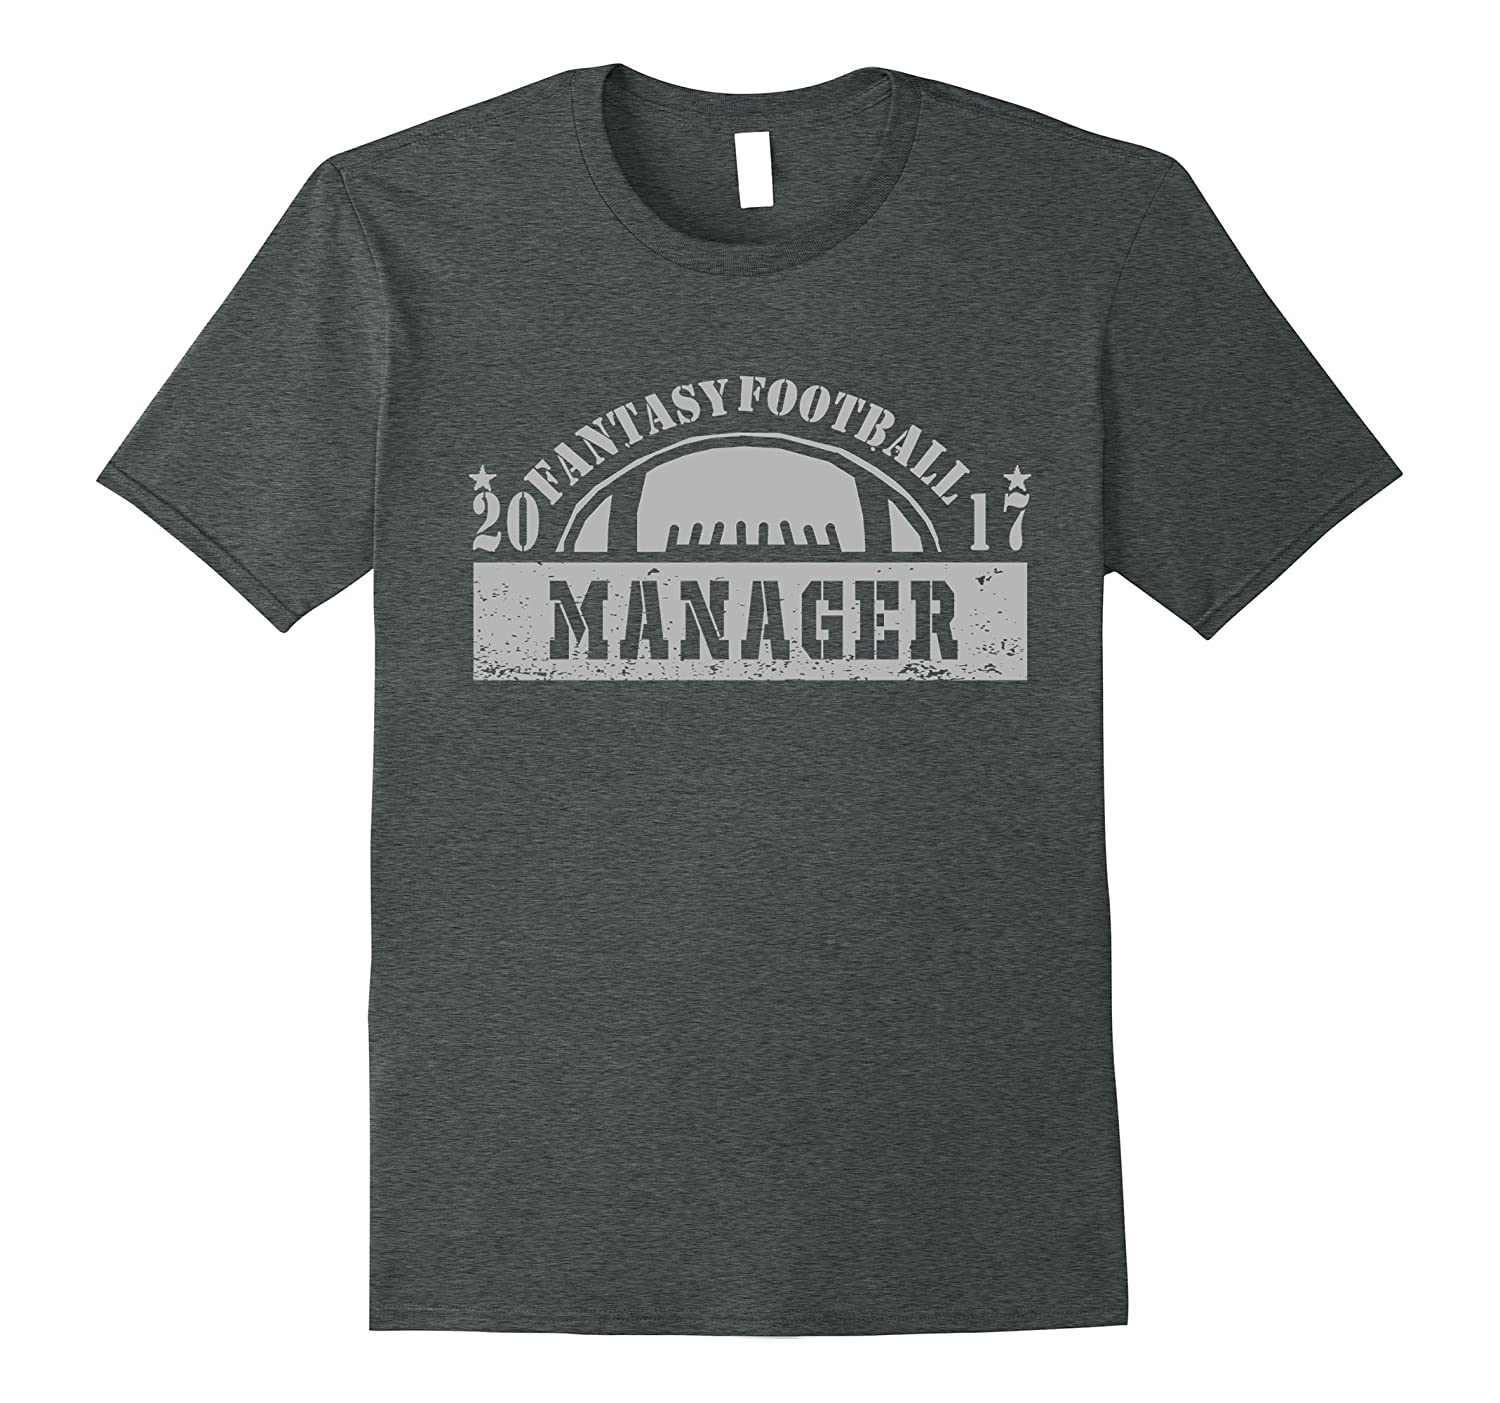 2017 Fantasy Football Manager Tee Shirt